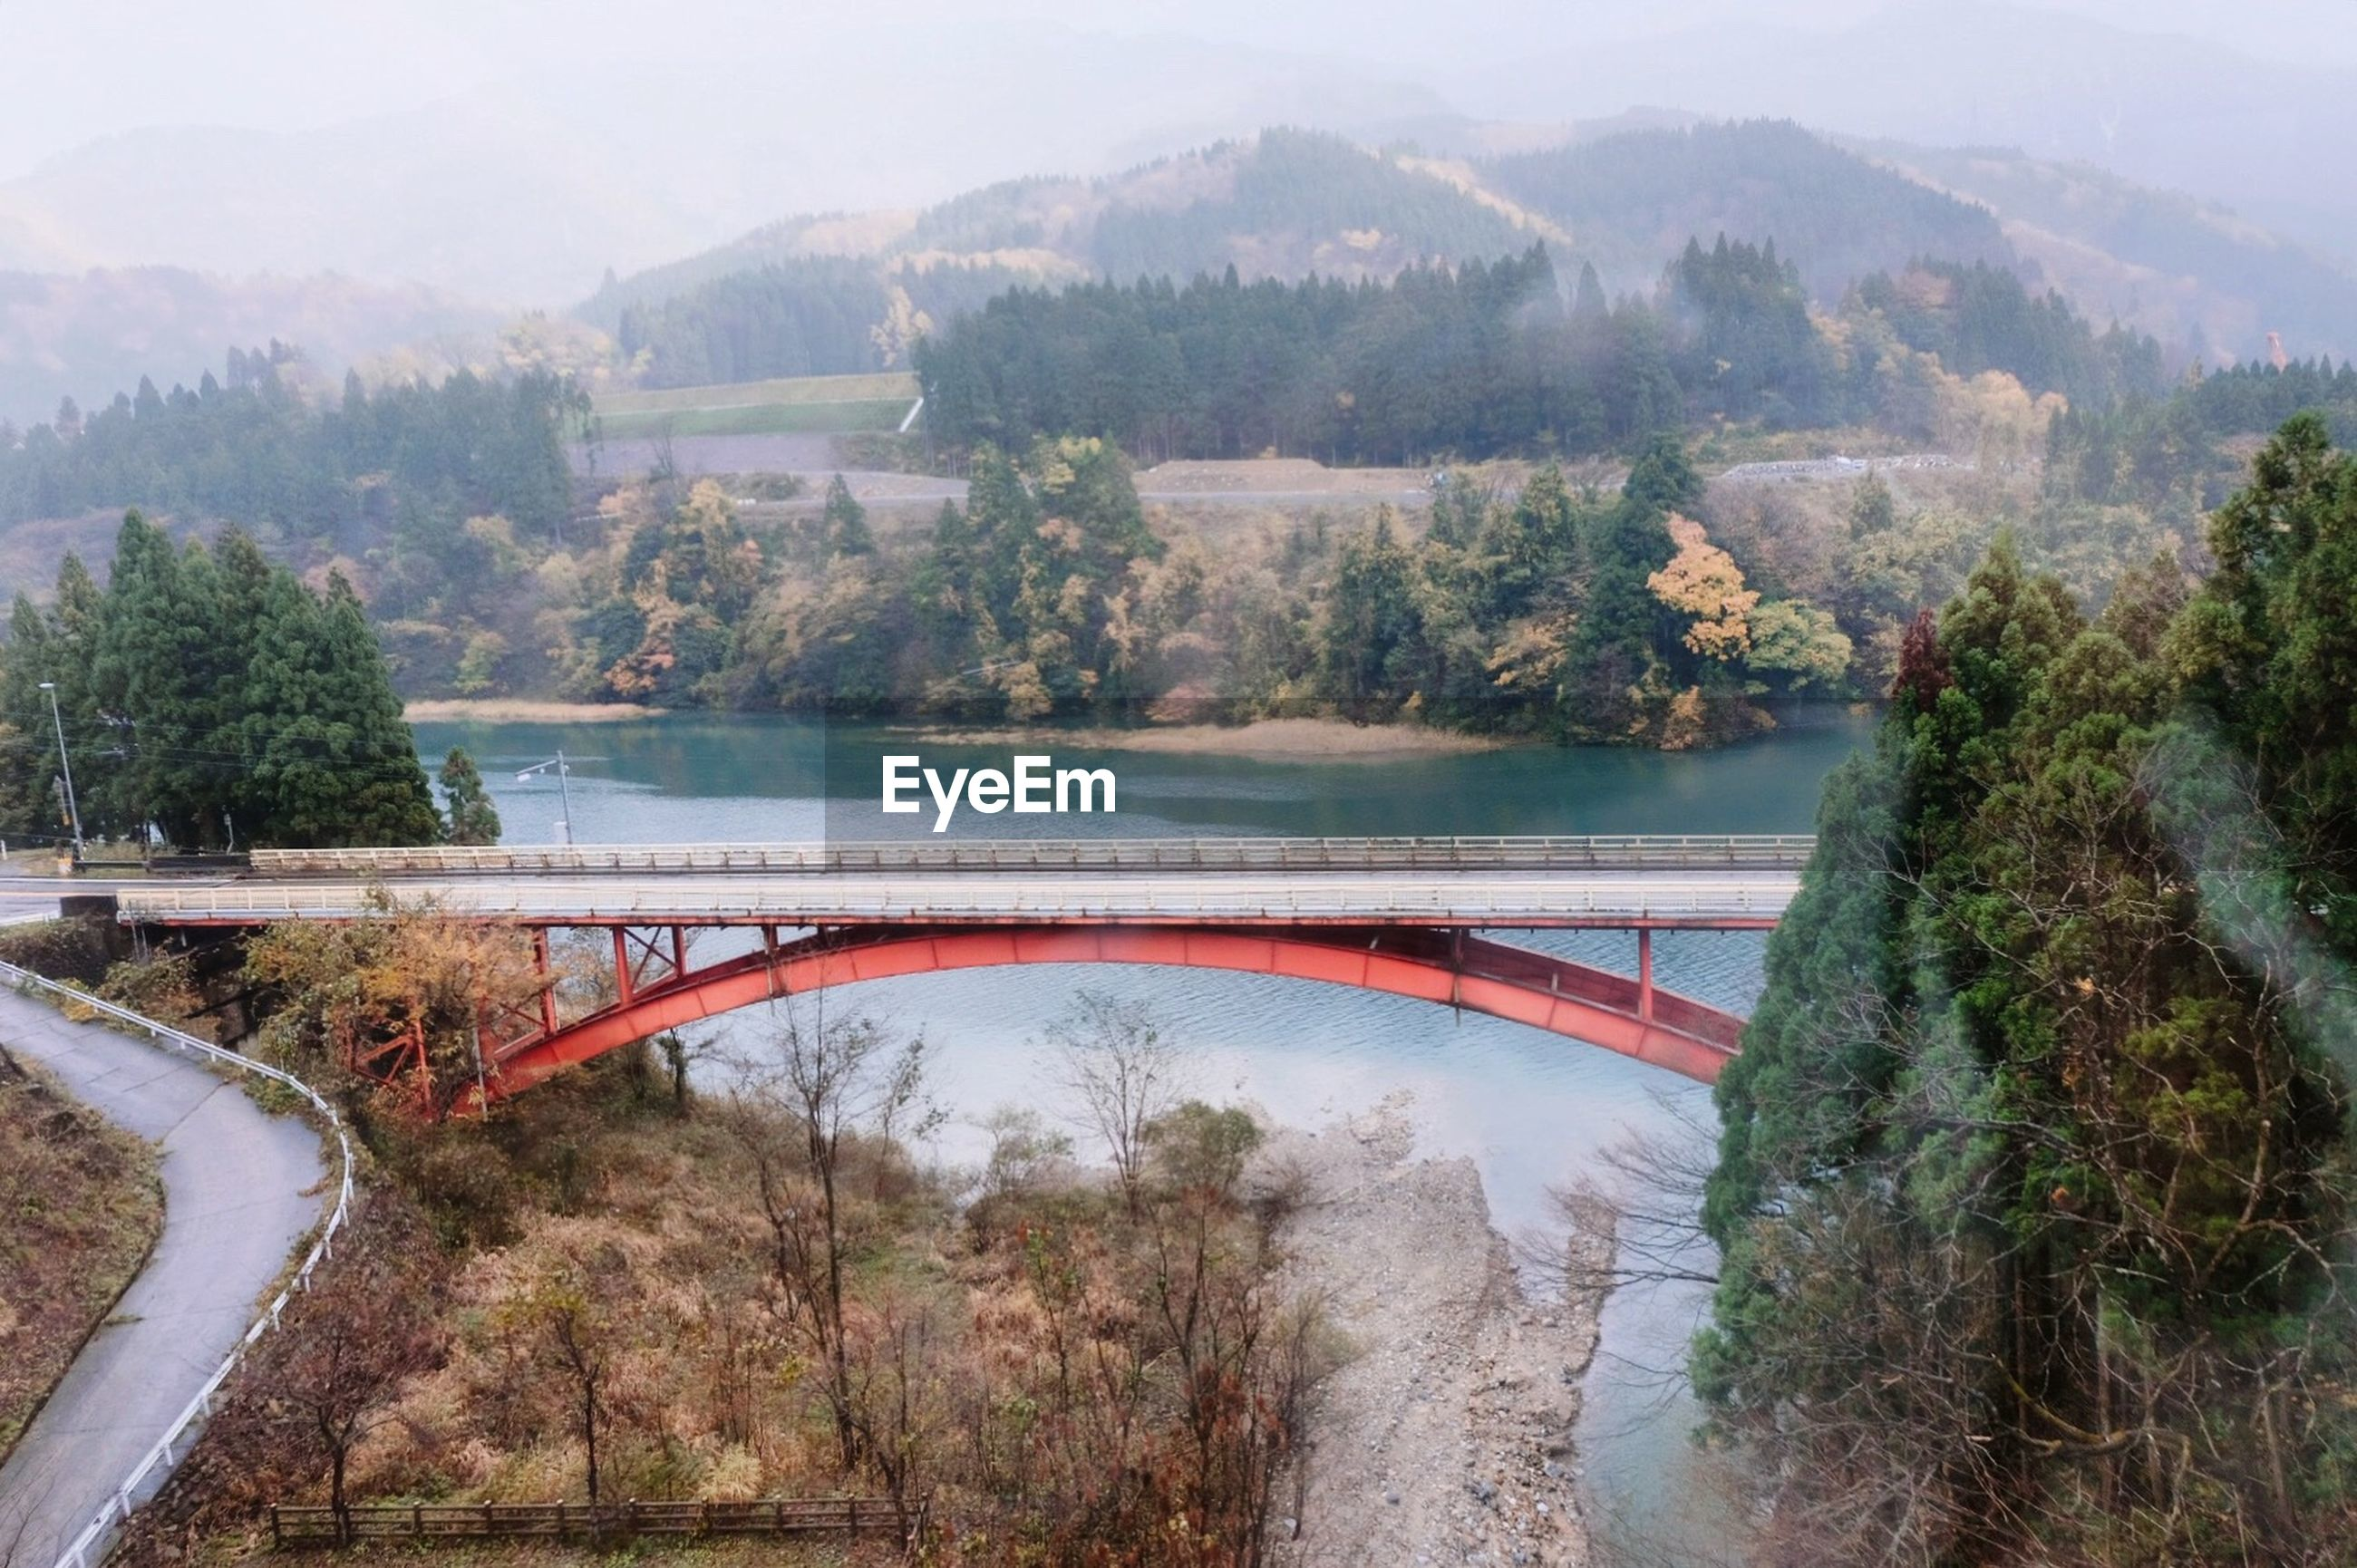 HIGH ANGLE VIEW OF BRIDGE OVER RIVER AGAINST TREES